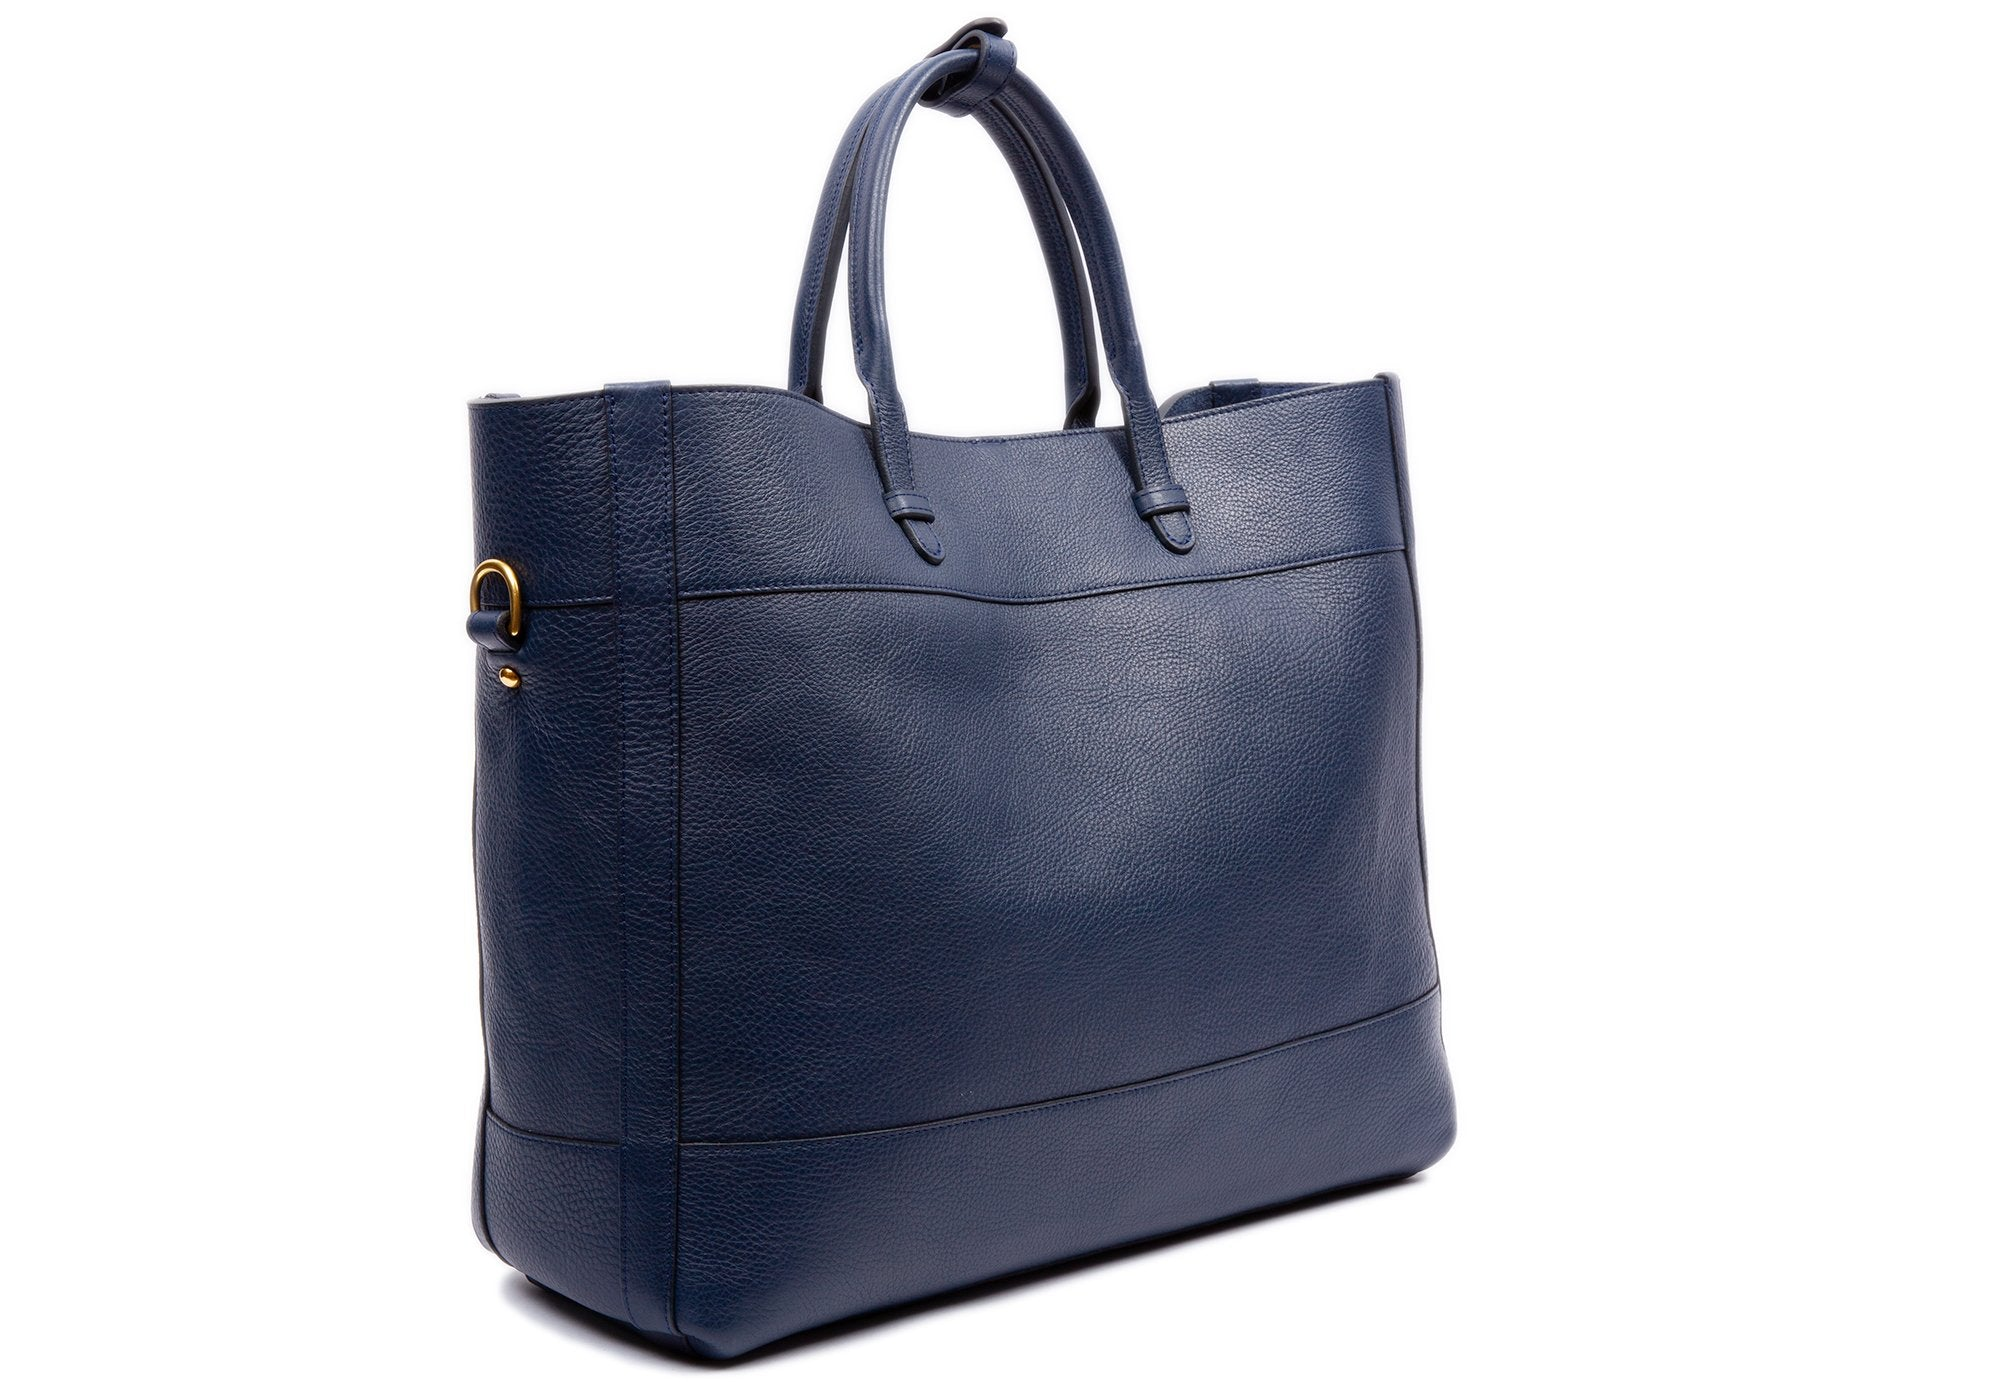 The 929 Tote Indigo